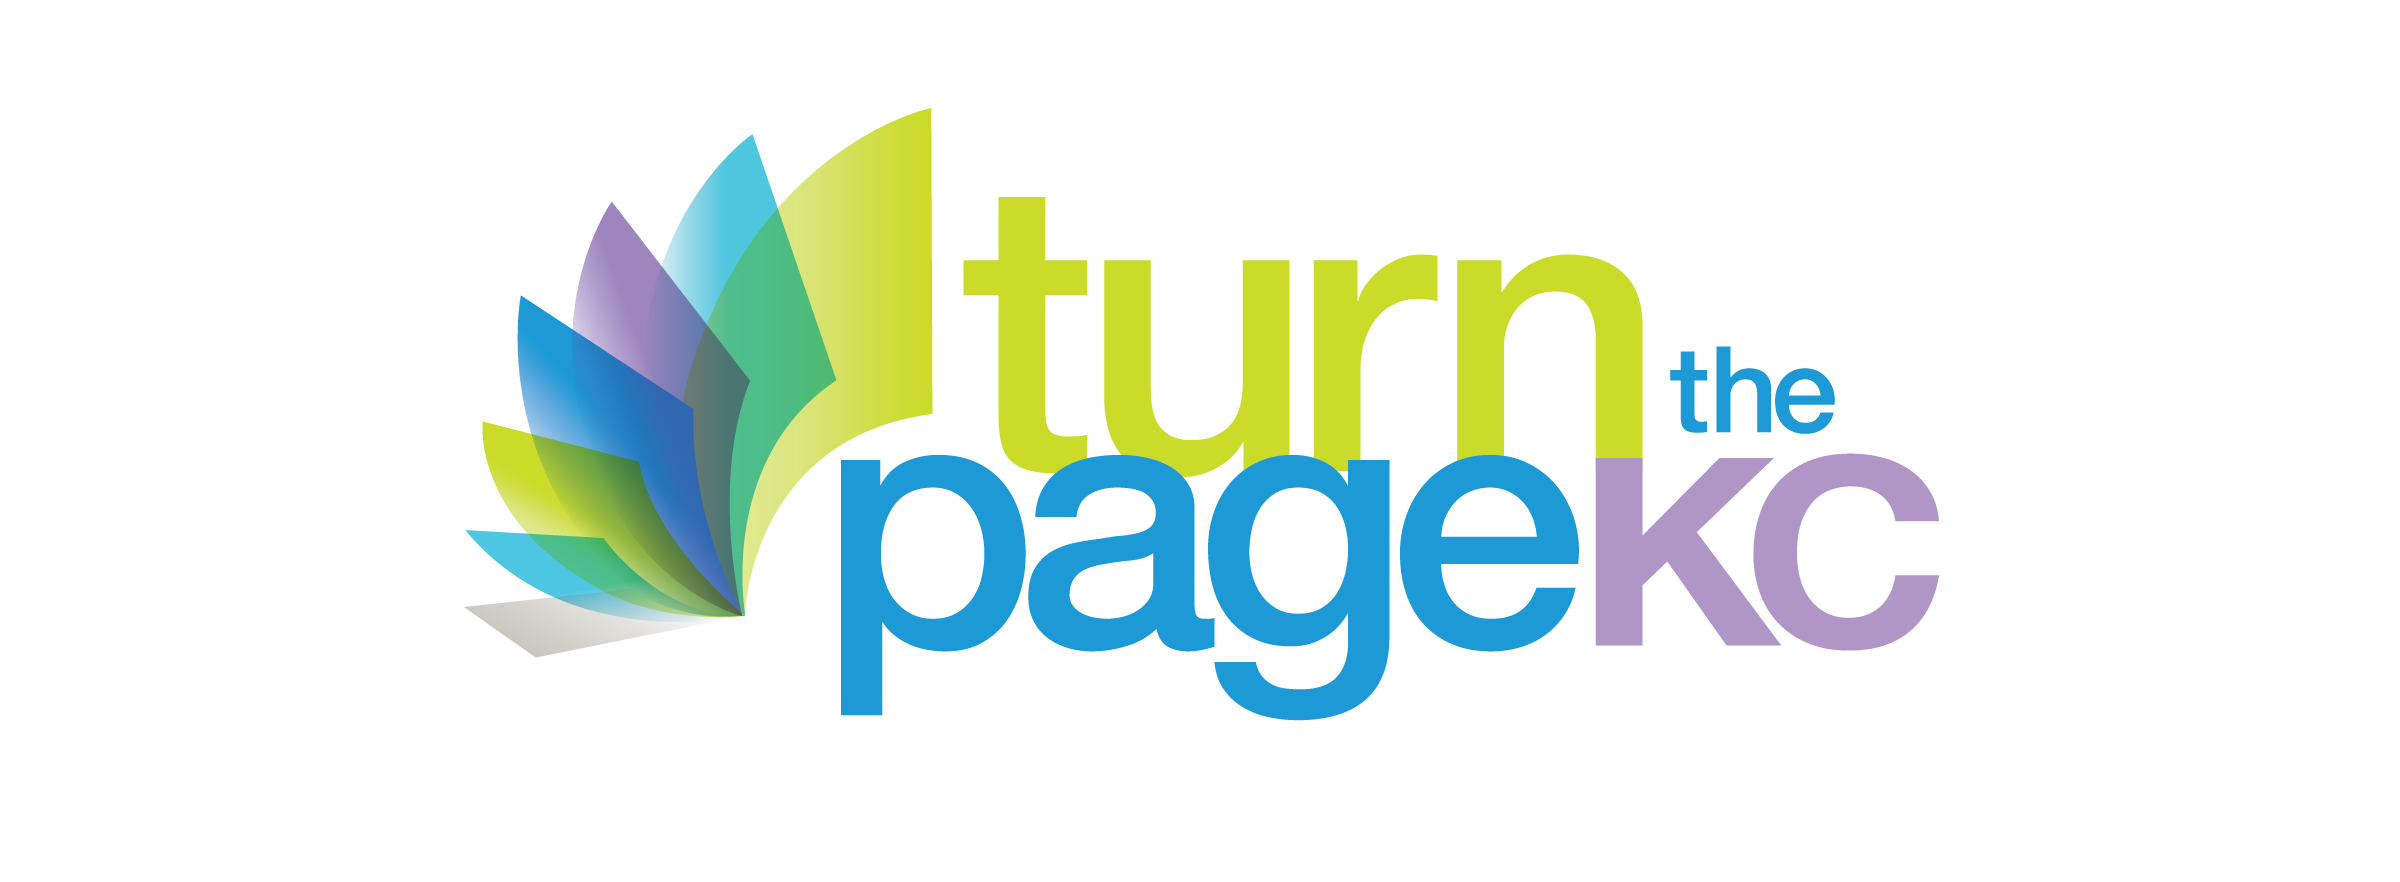 Turn The Page Png - turn-the-page-logo-use-this-one - American Public Square